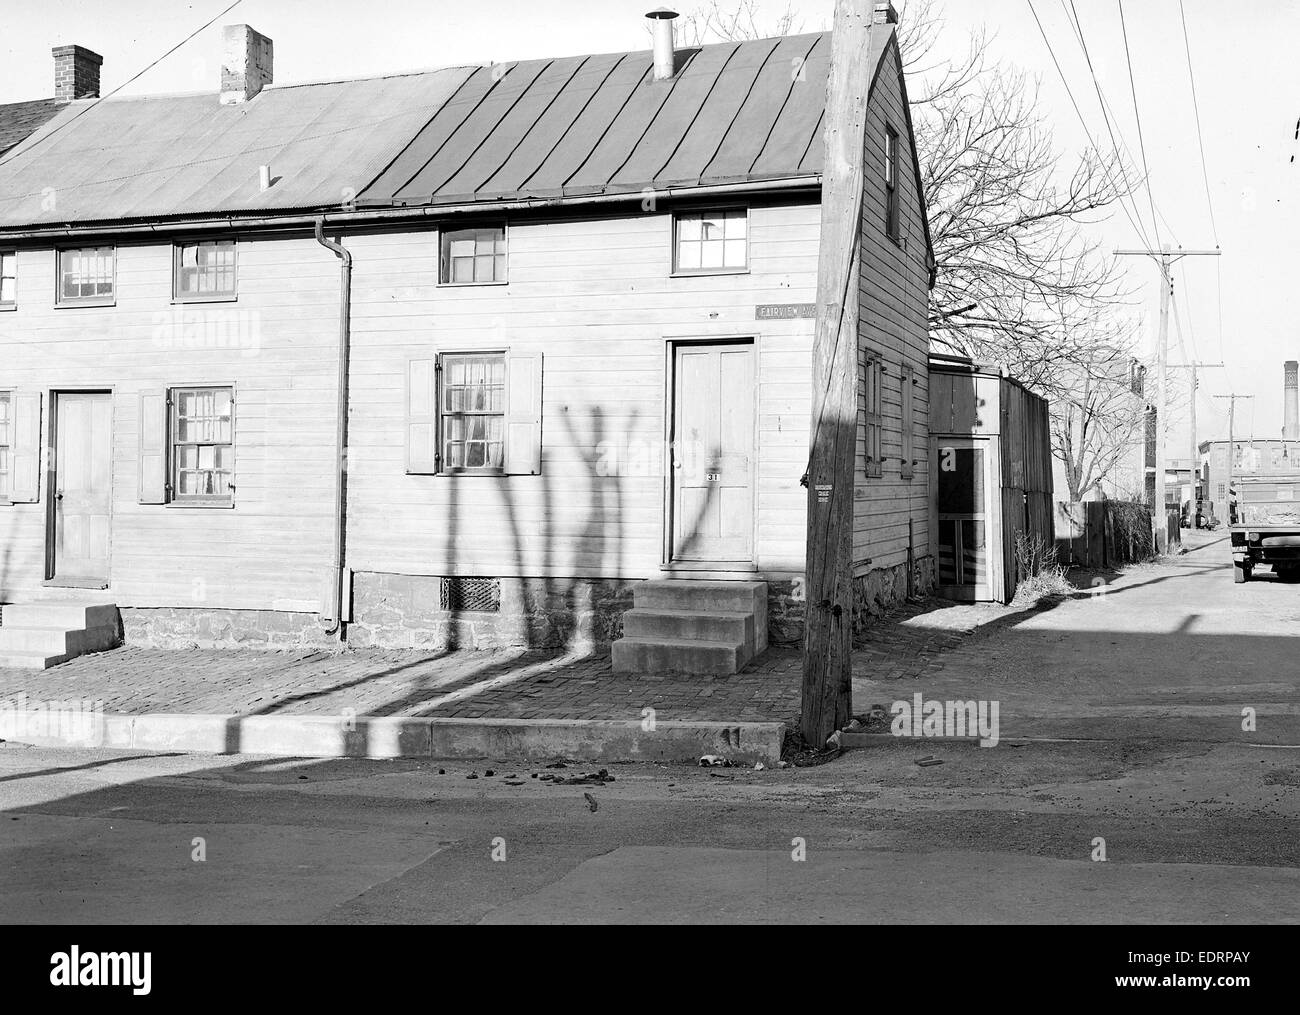 Lancaster, Pennsylvania - Housing. Low-priced houses on Cabbage Hill - rental about $12.00 per month (umbrella factory) Stock Photo